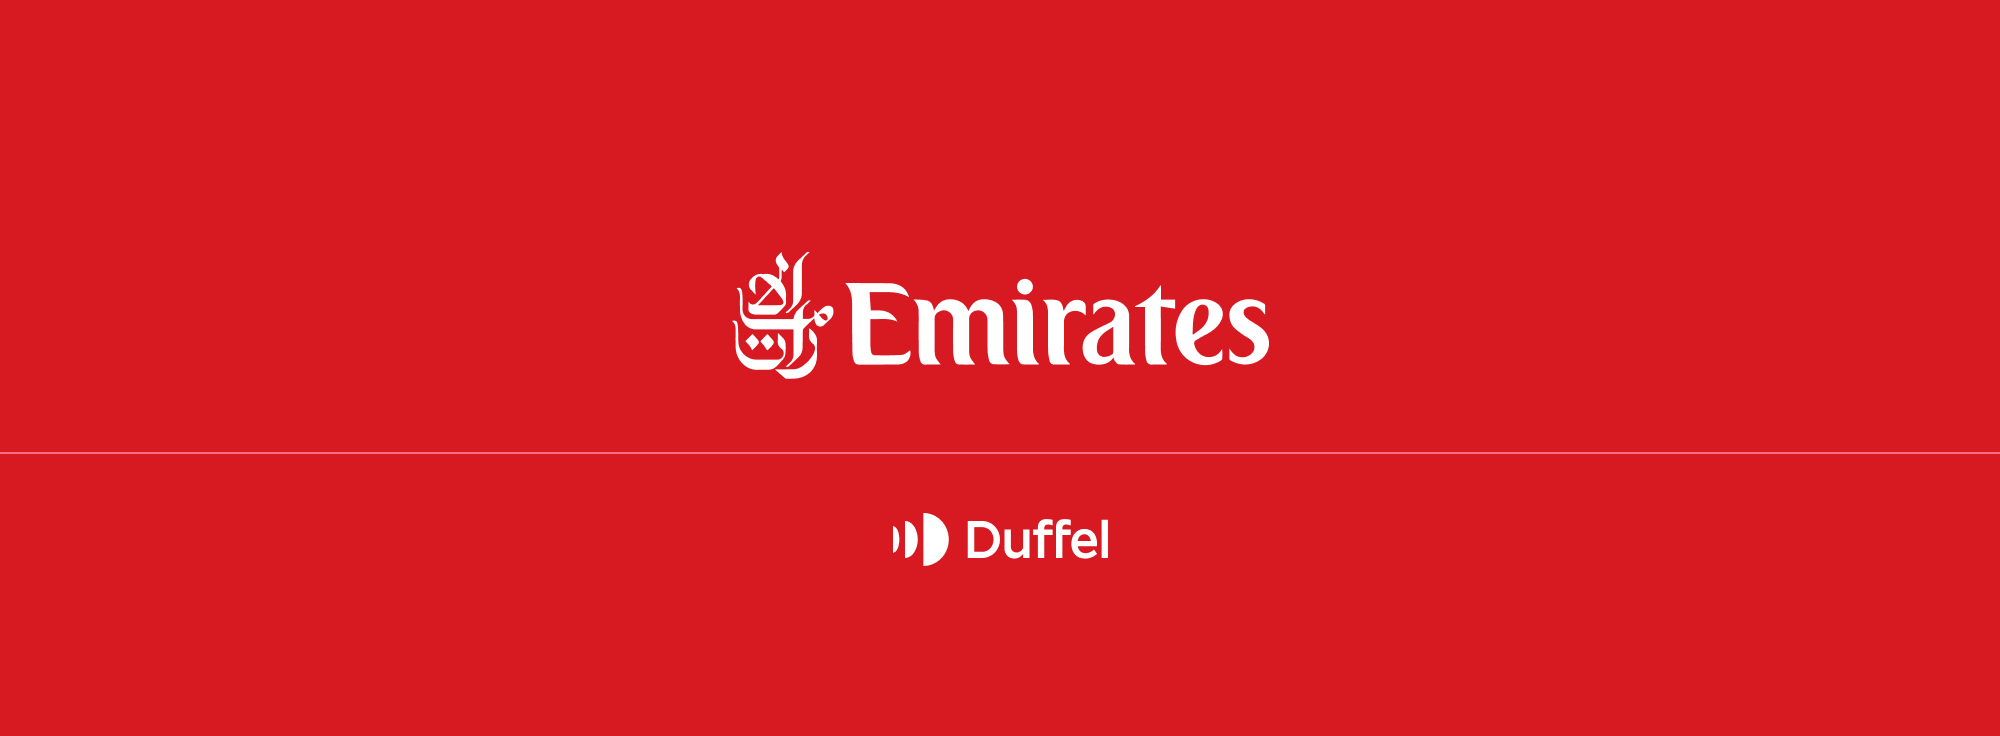 "Emirates have announced the new ""Emirates Gateway"" NDC platform - what does it mean for travel sellers?"